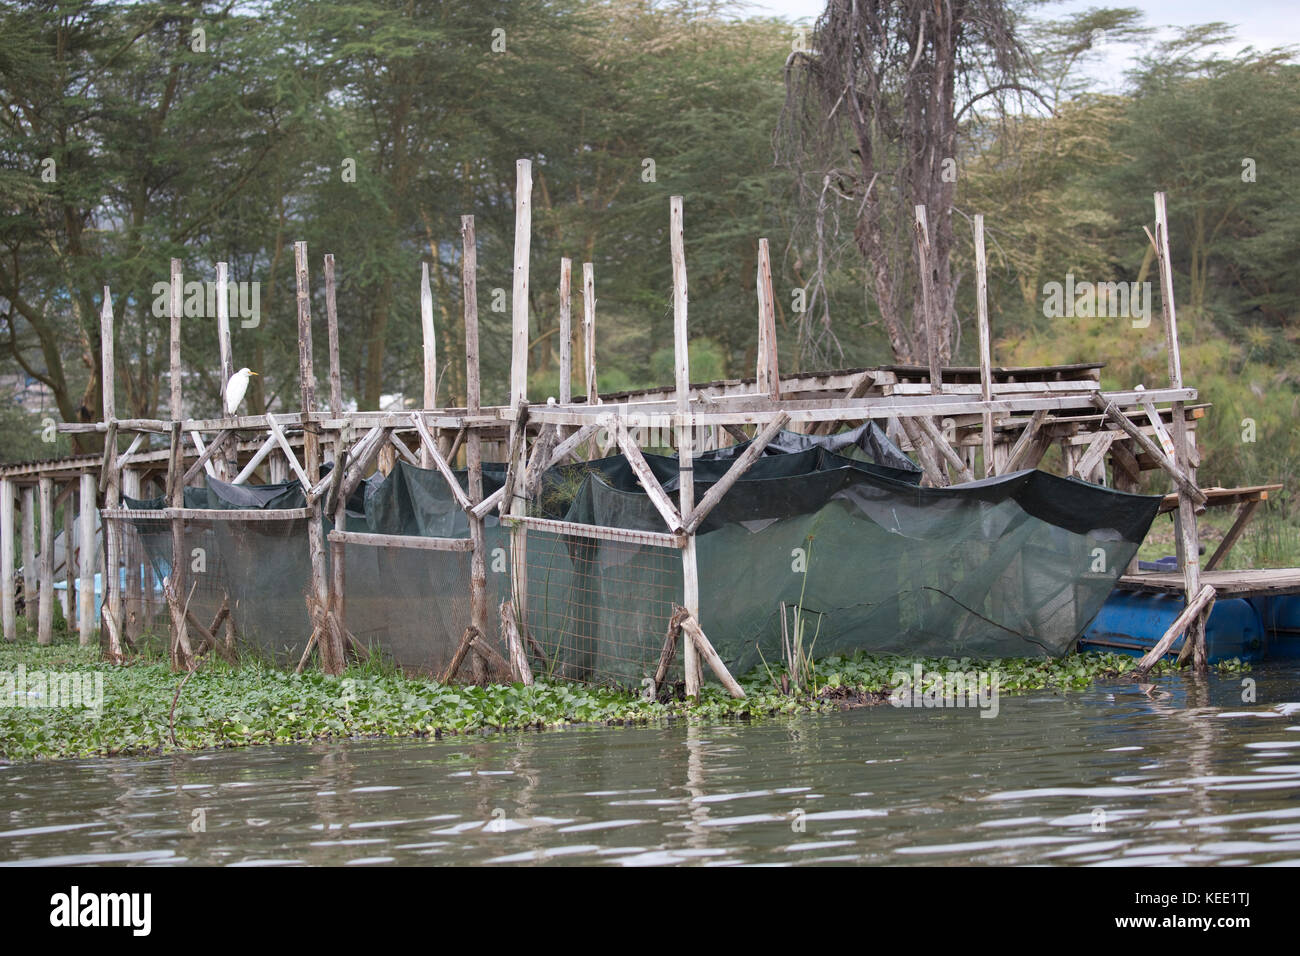 Nets for holding live crayfish by jetty Chinese tourist lodge Lake Naivasha Kenya - Stock Image